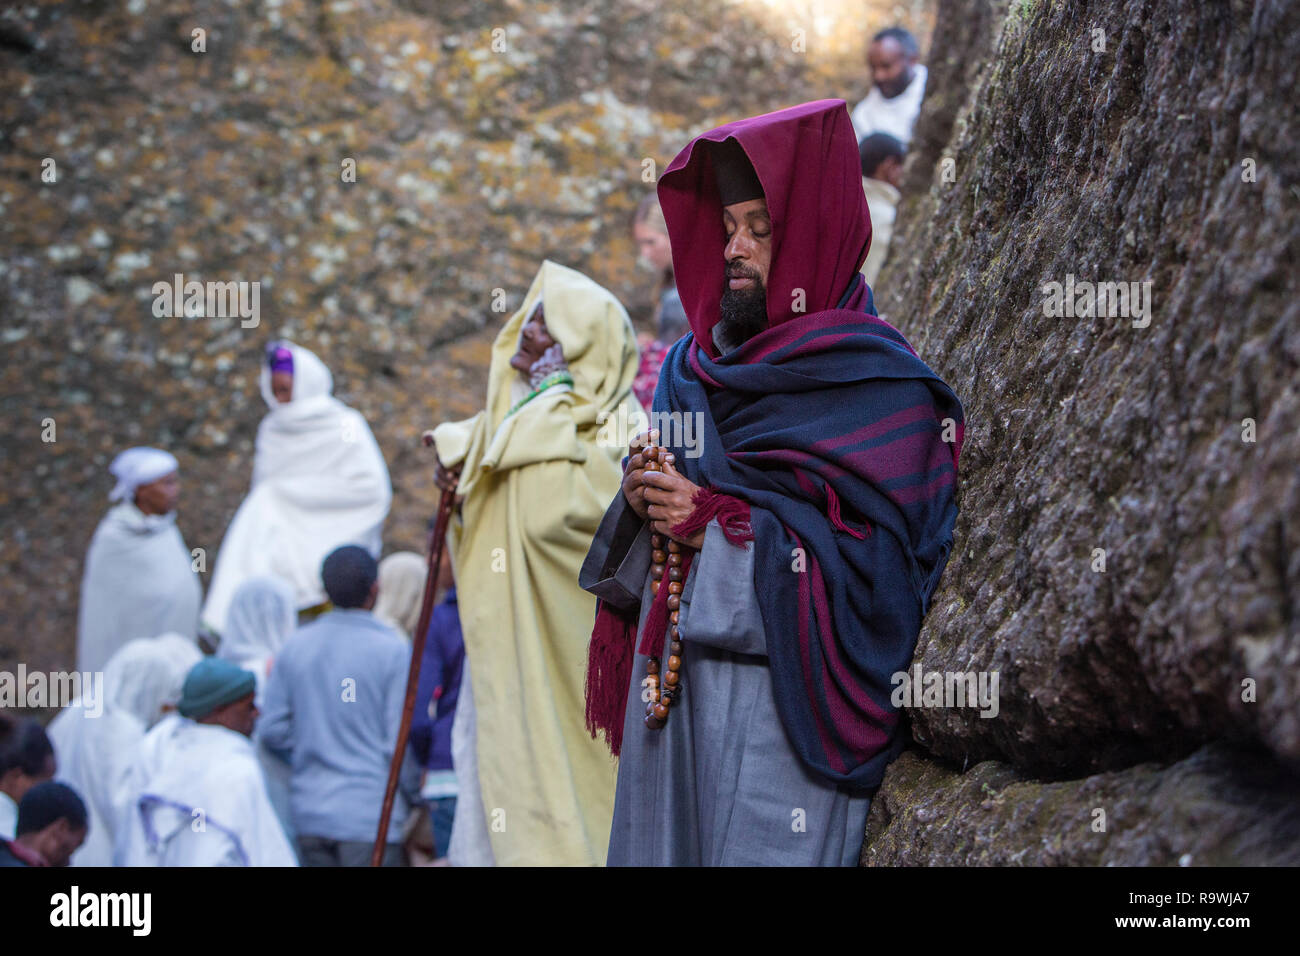 Priests and worshipers during mass at the rock-cut church of House of the Saviour of the World at Lalibela, Ethiopia - Stock Image